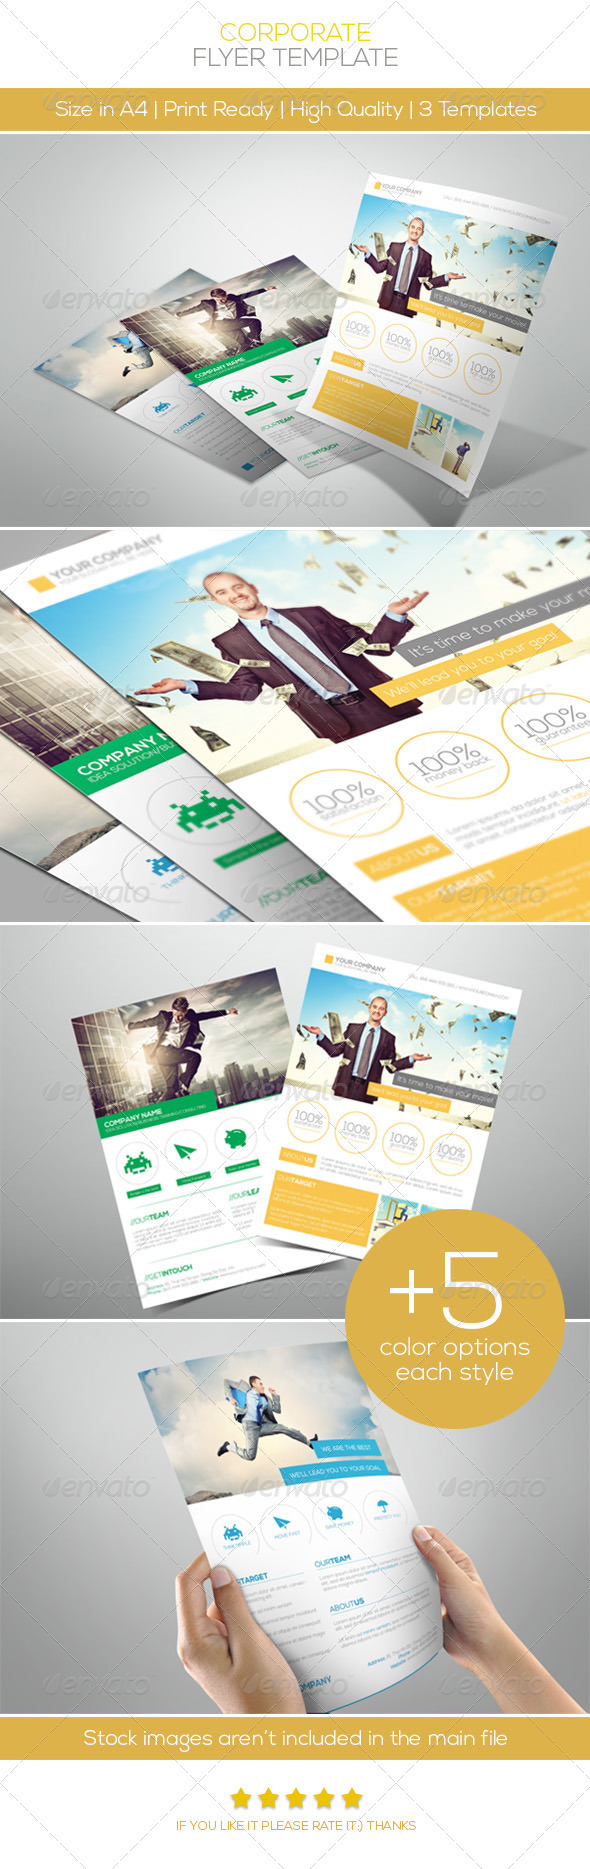 Premium Corporate Flyers Vol.2 - Corporate Flyers